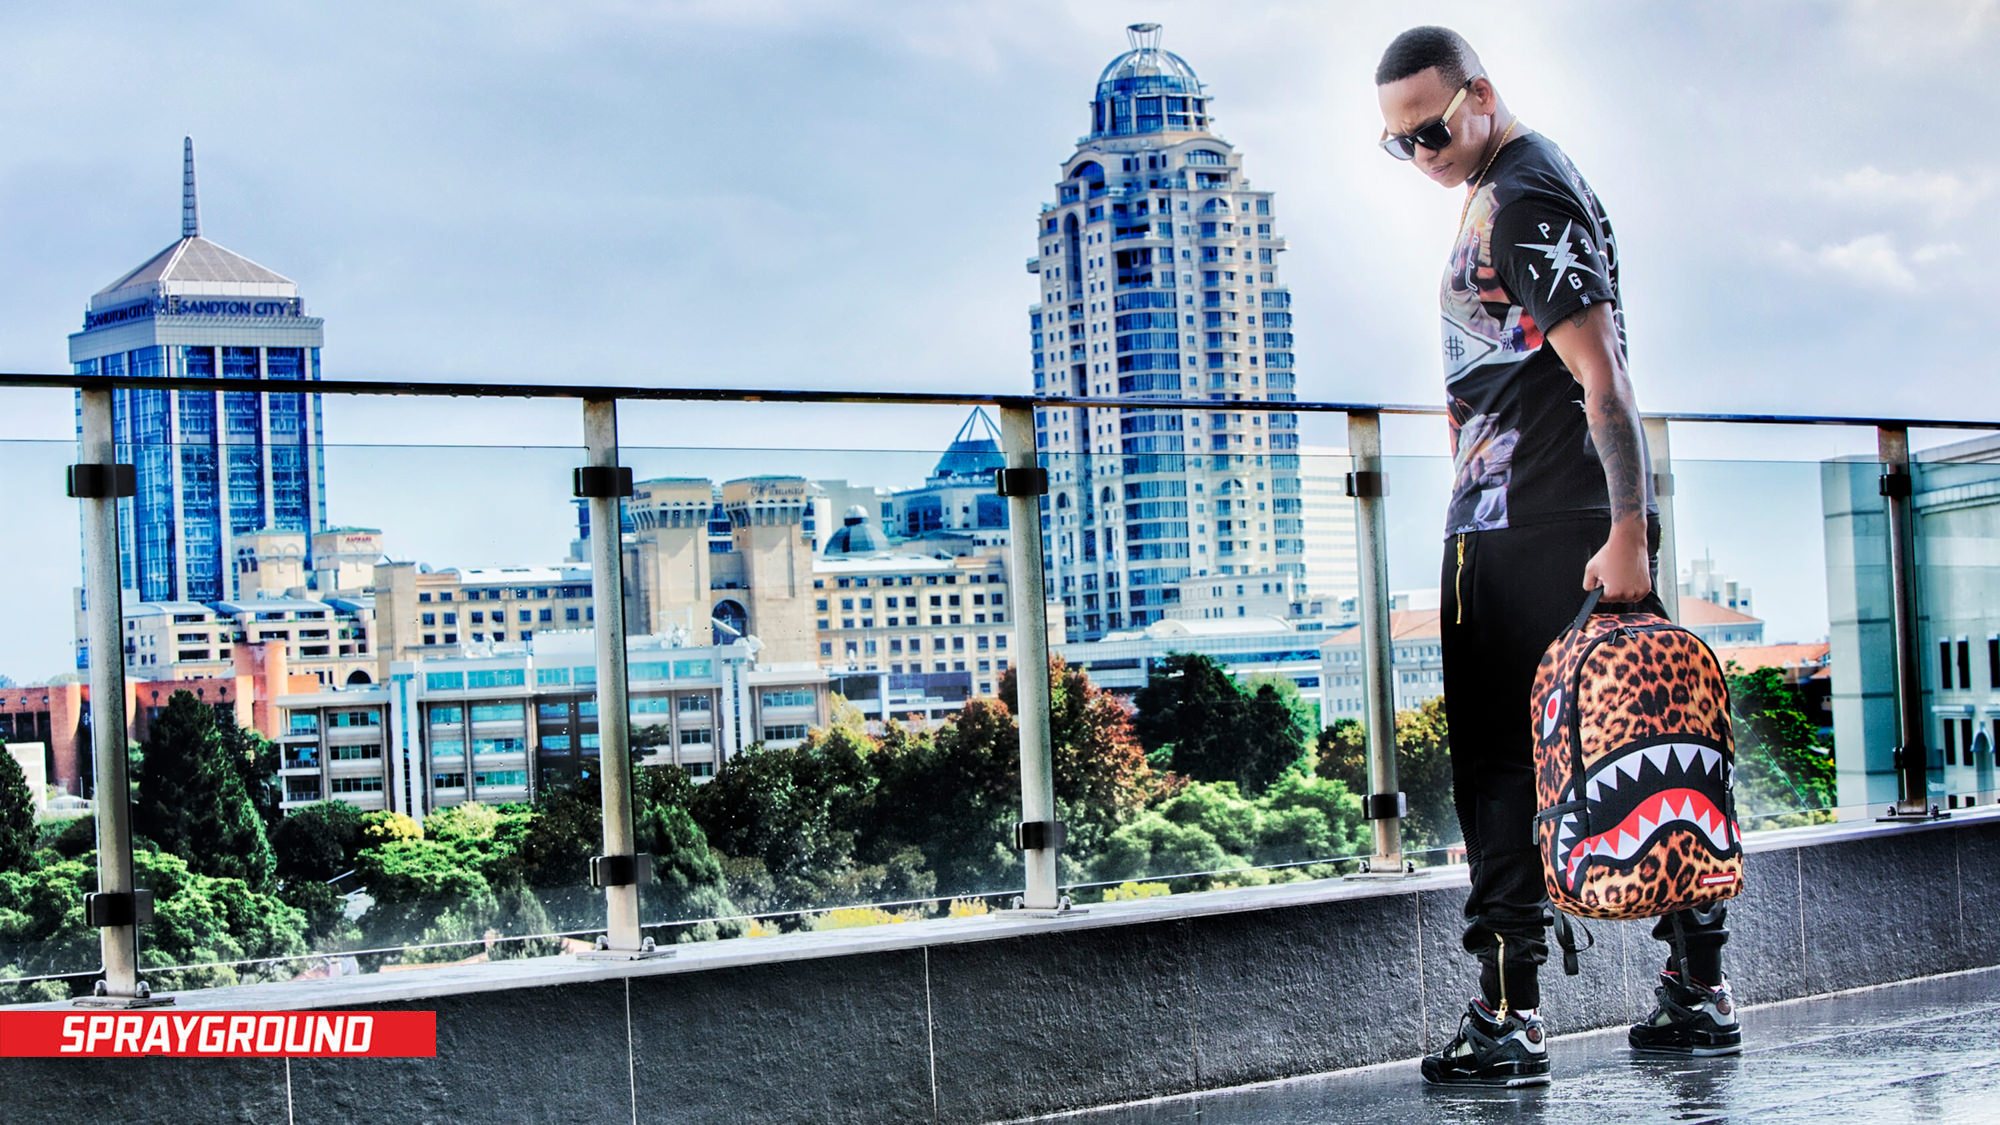 Image of Da L.E.S on Sandton Rooftop for Sprayground's Africa Launch by Michelle Wastie Photography.